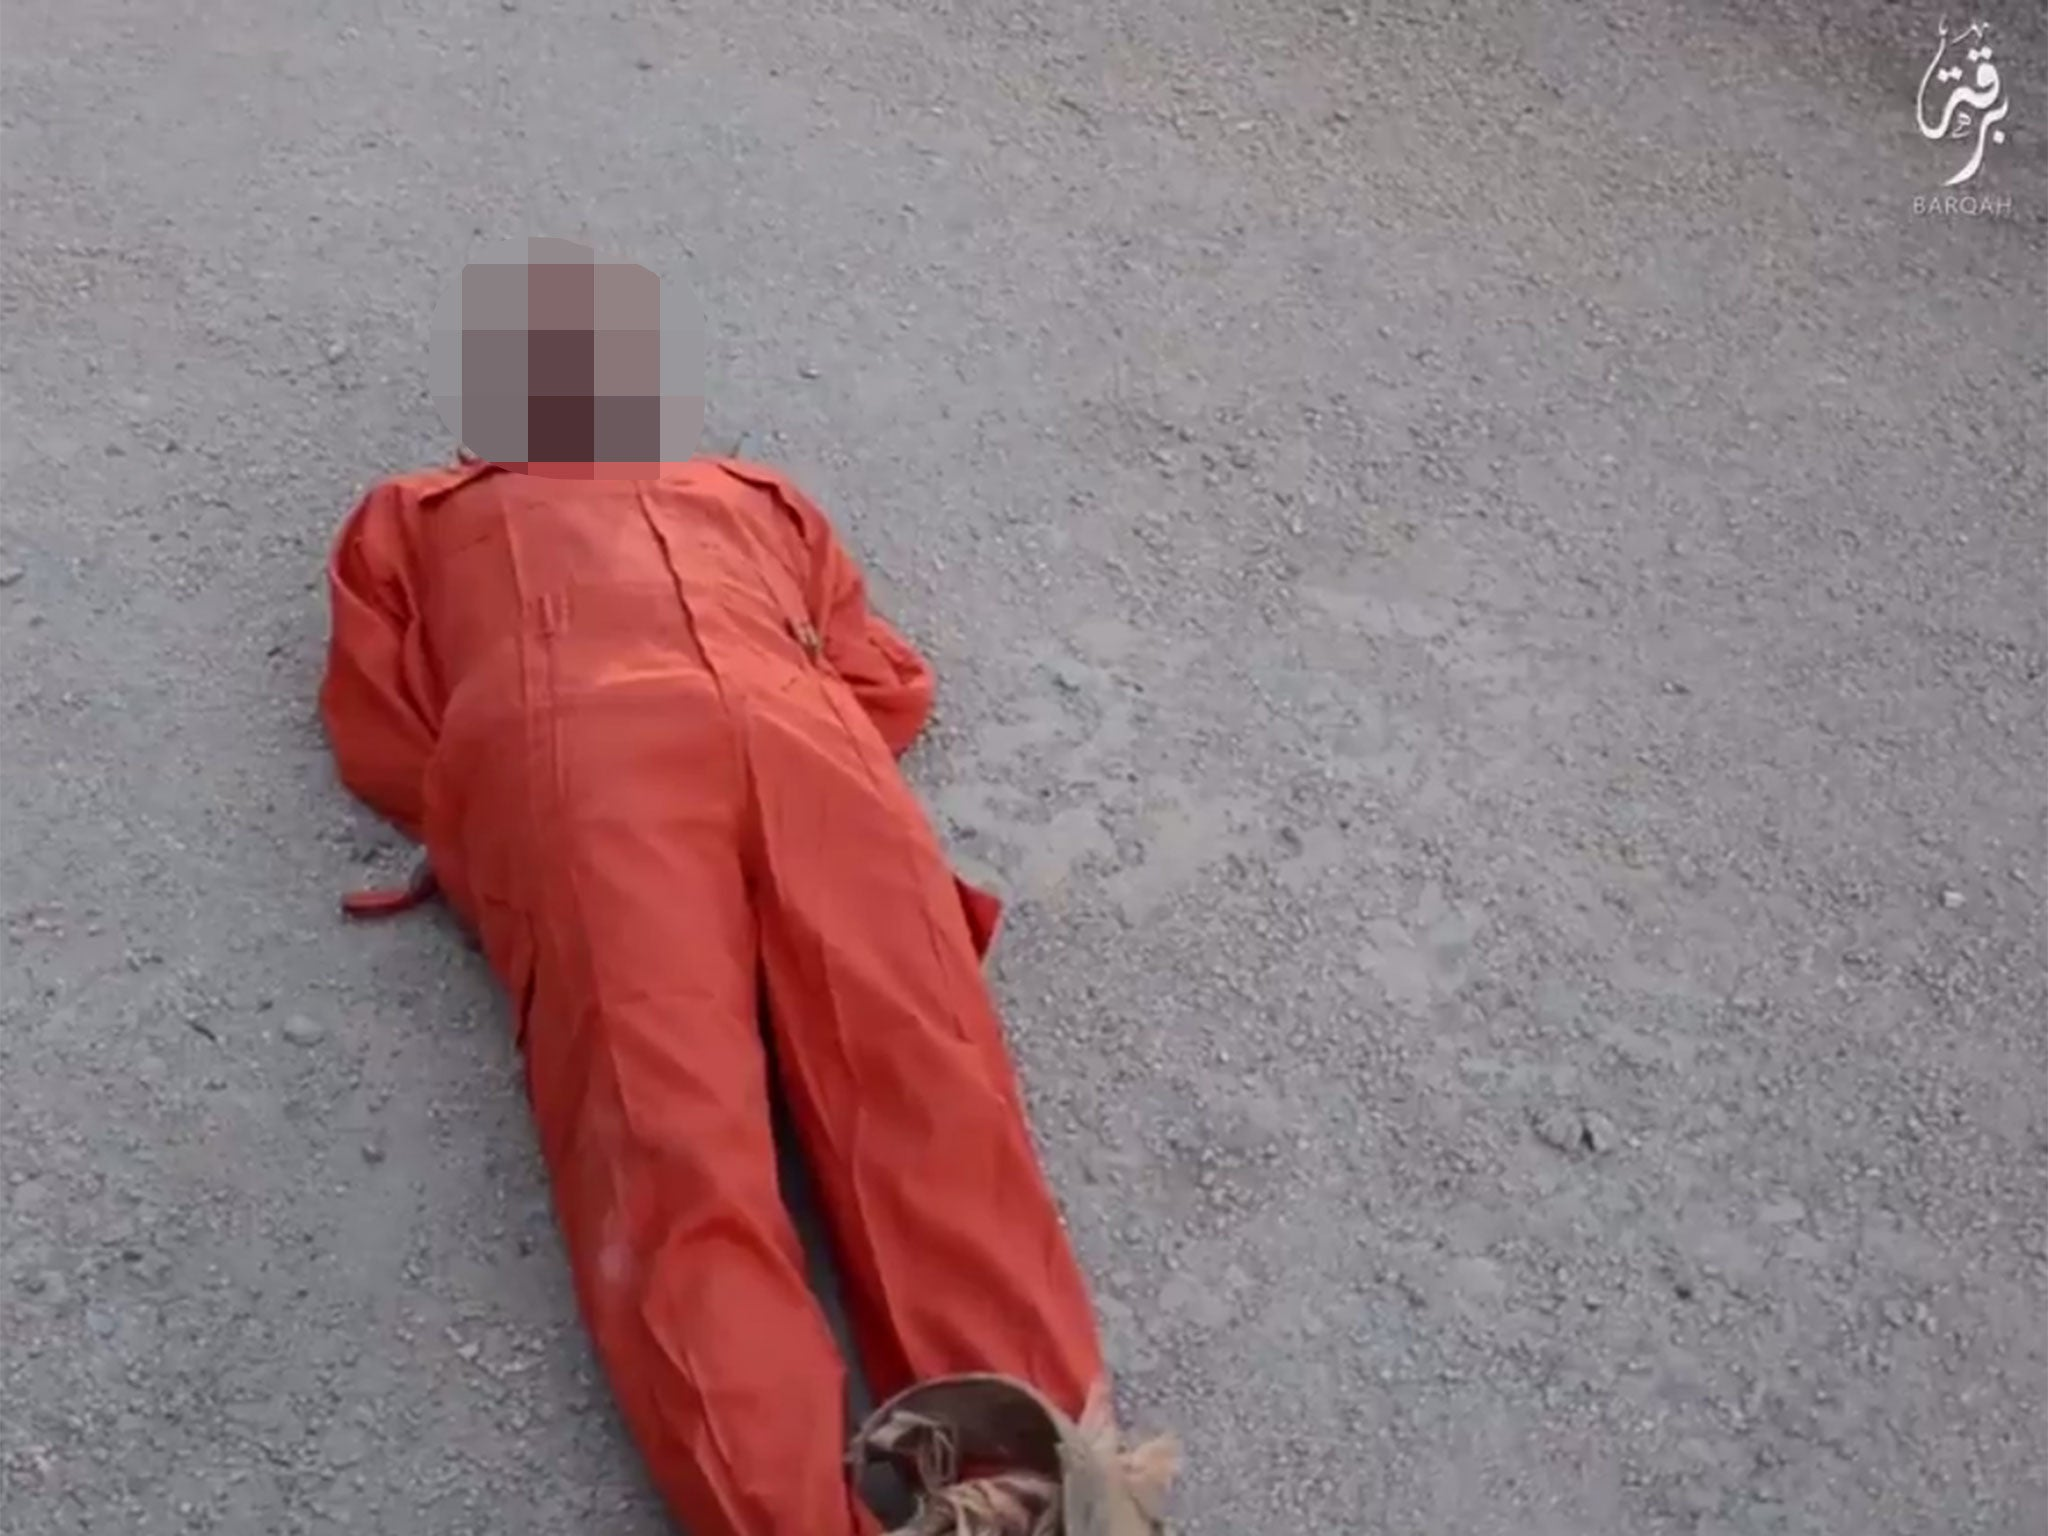 Isis video showing Libyan 'spy' dragged to death behind a speeding truck betrays disturbing new trend